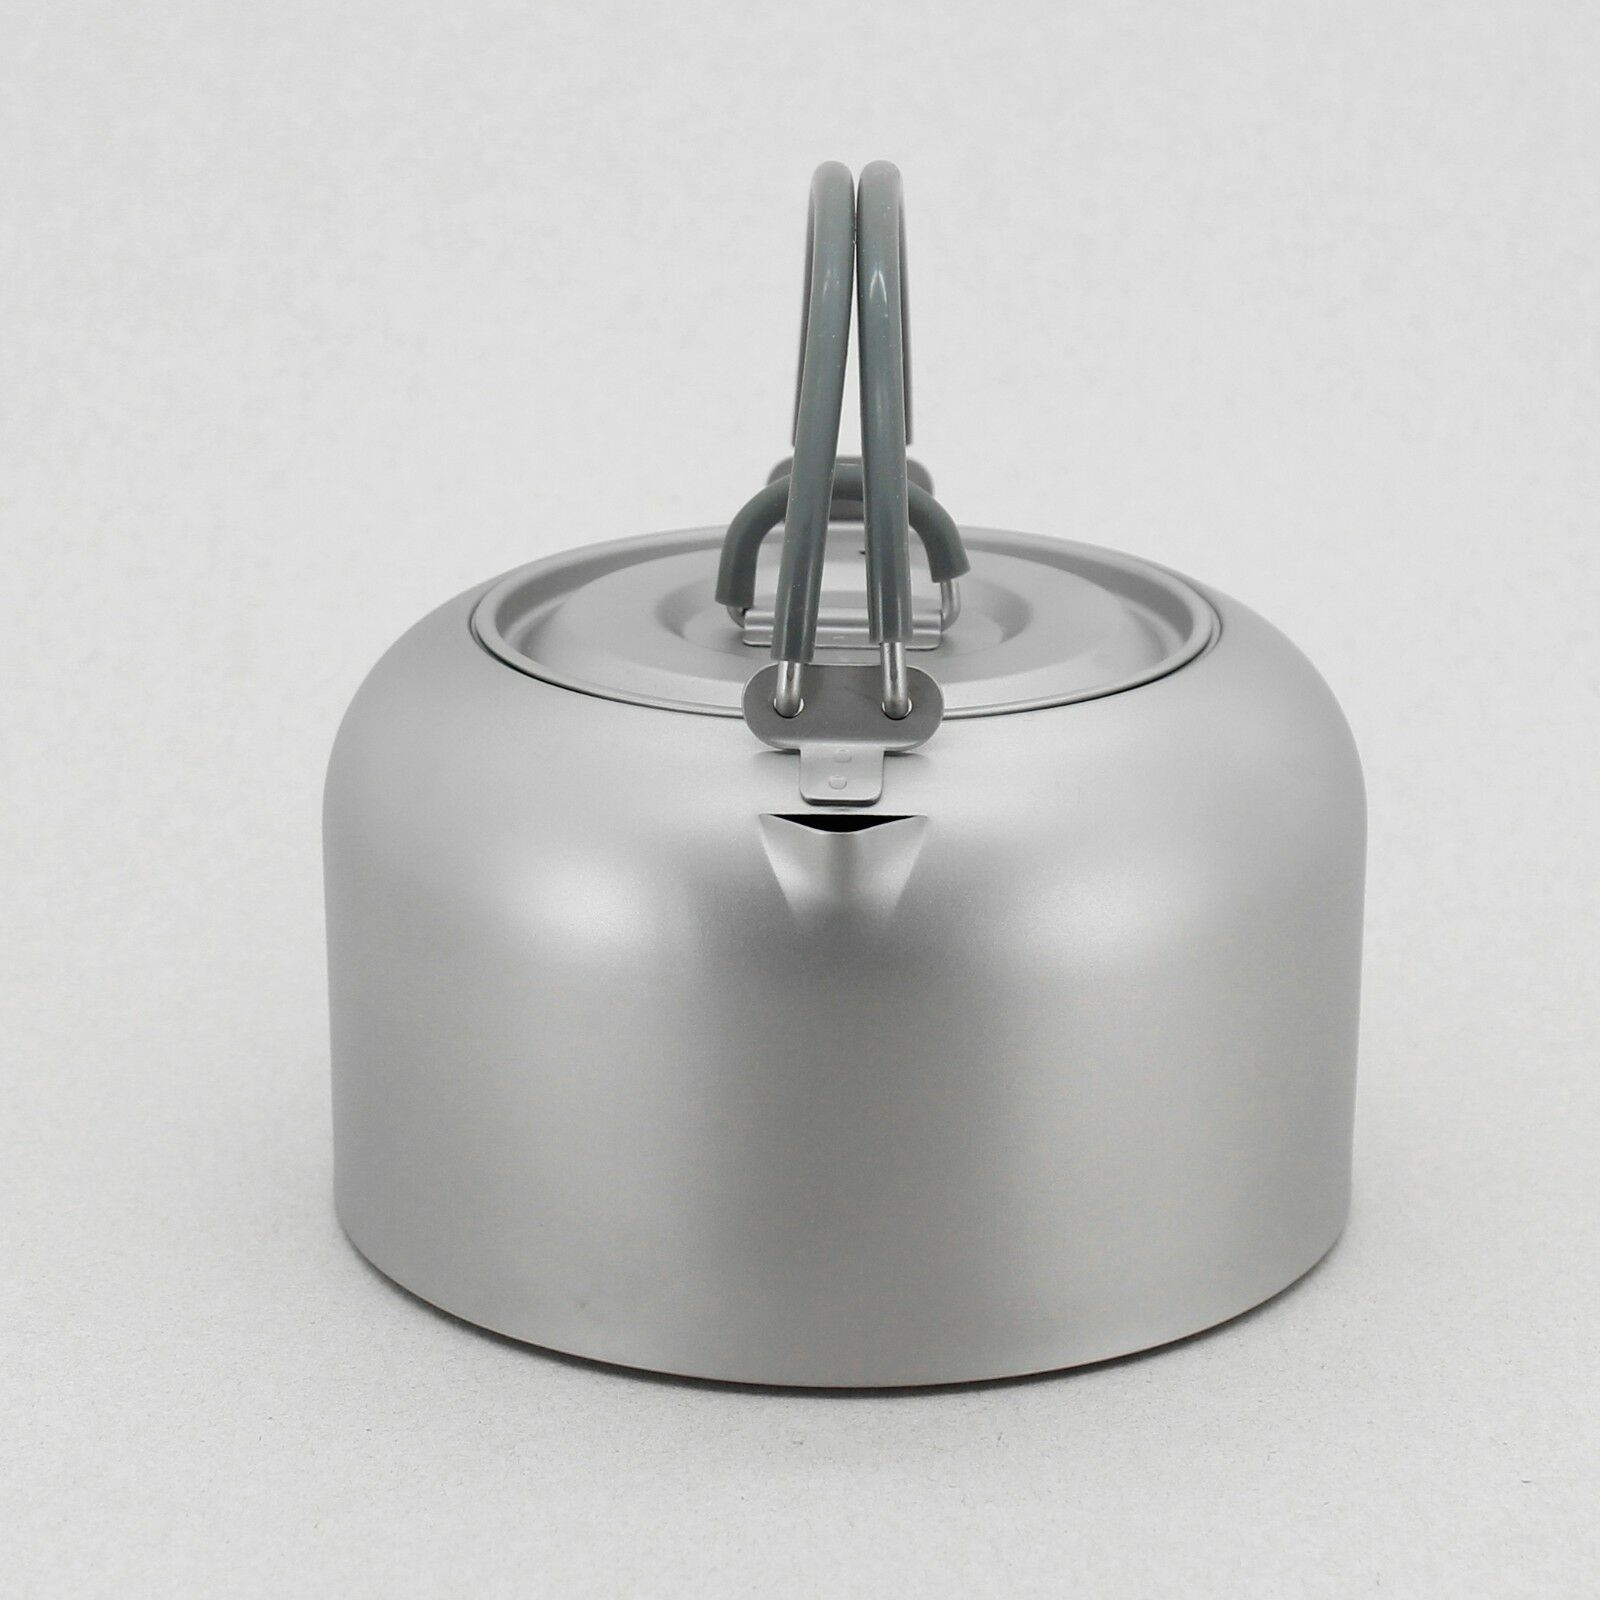 Keith Titanium Ti3901 Kettle - - - 1.0 L (Shipped from USA) b59148